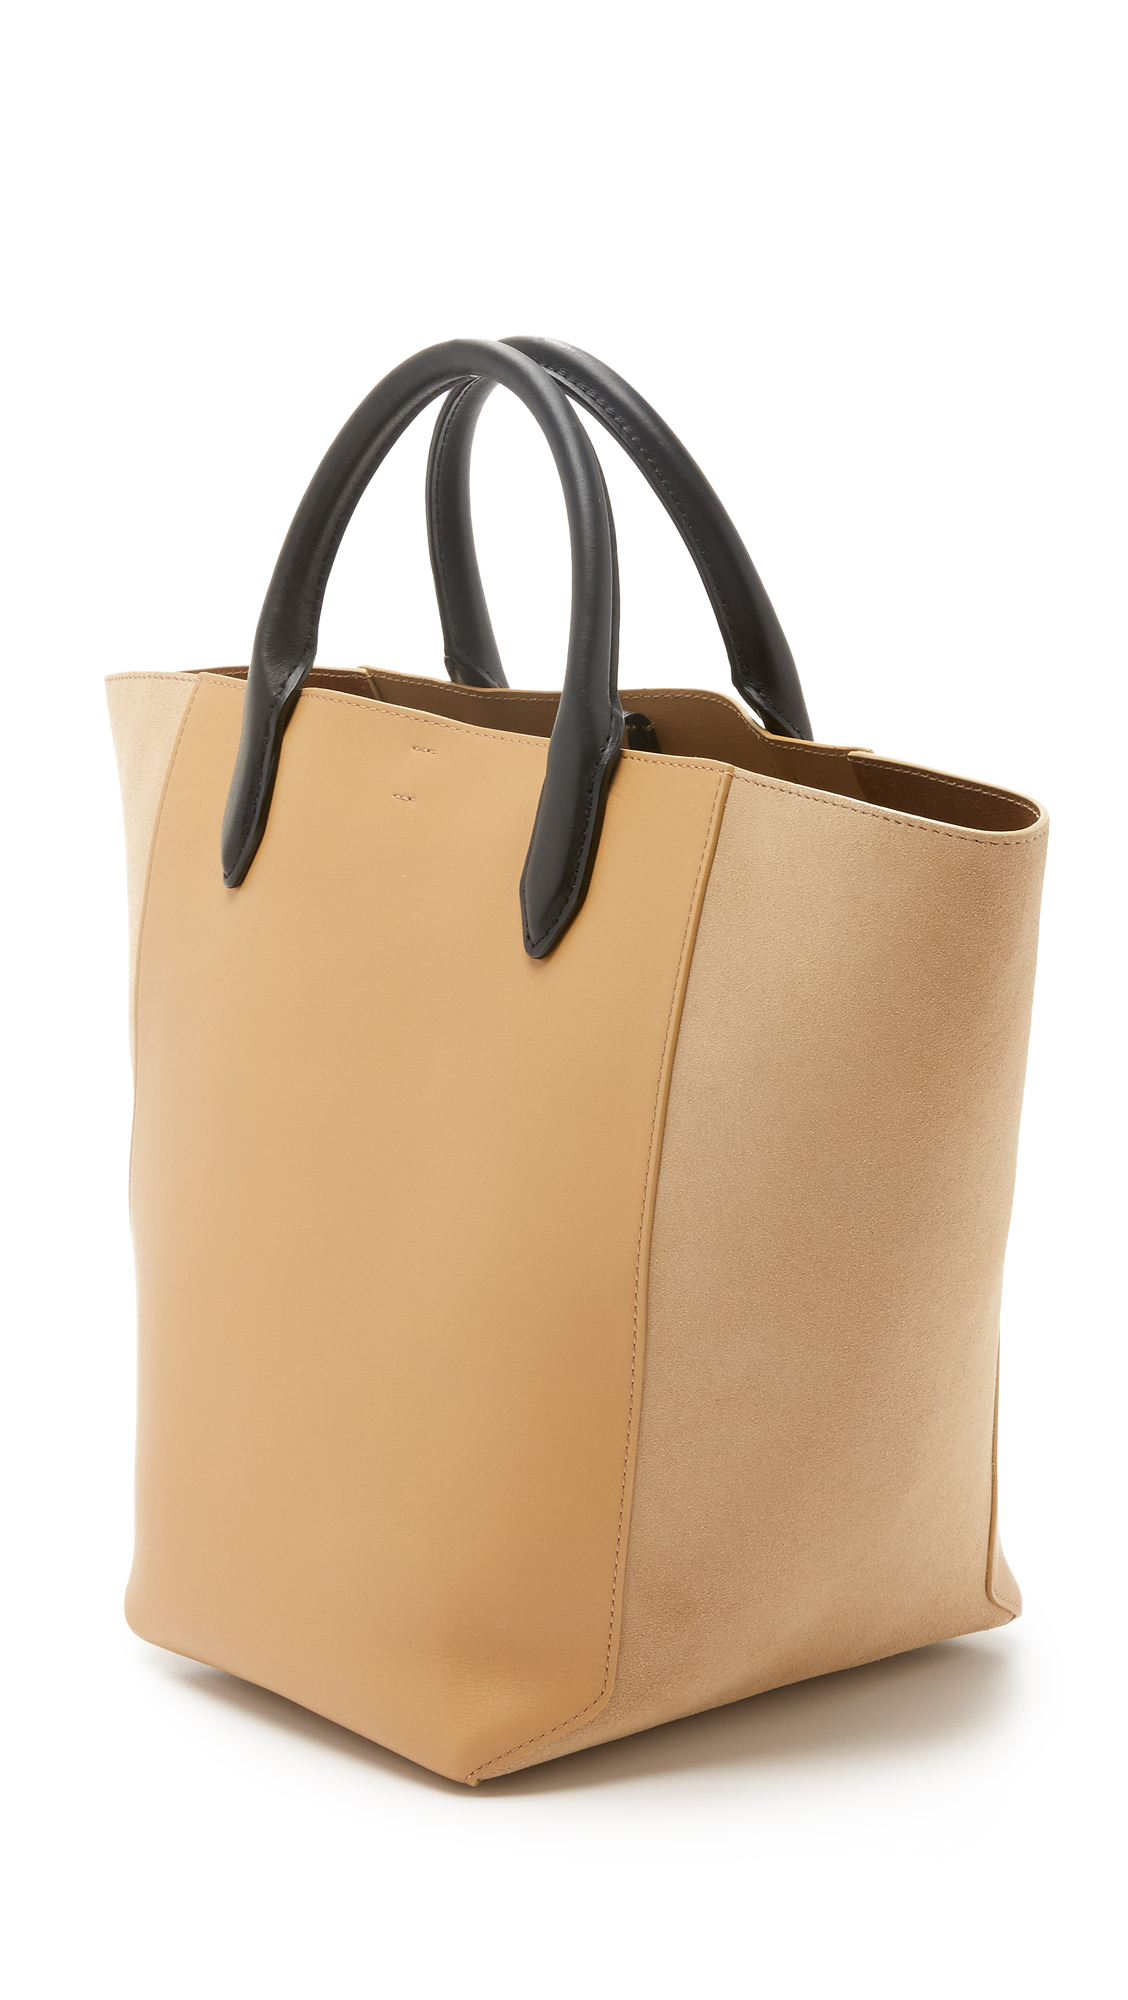 3.1 Phillip Lim Bianca Small Tote in Camel (Natural)